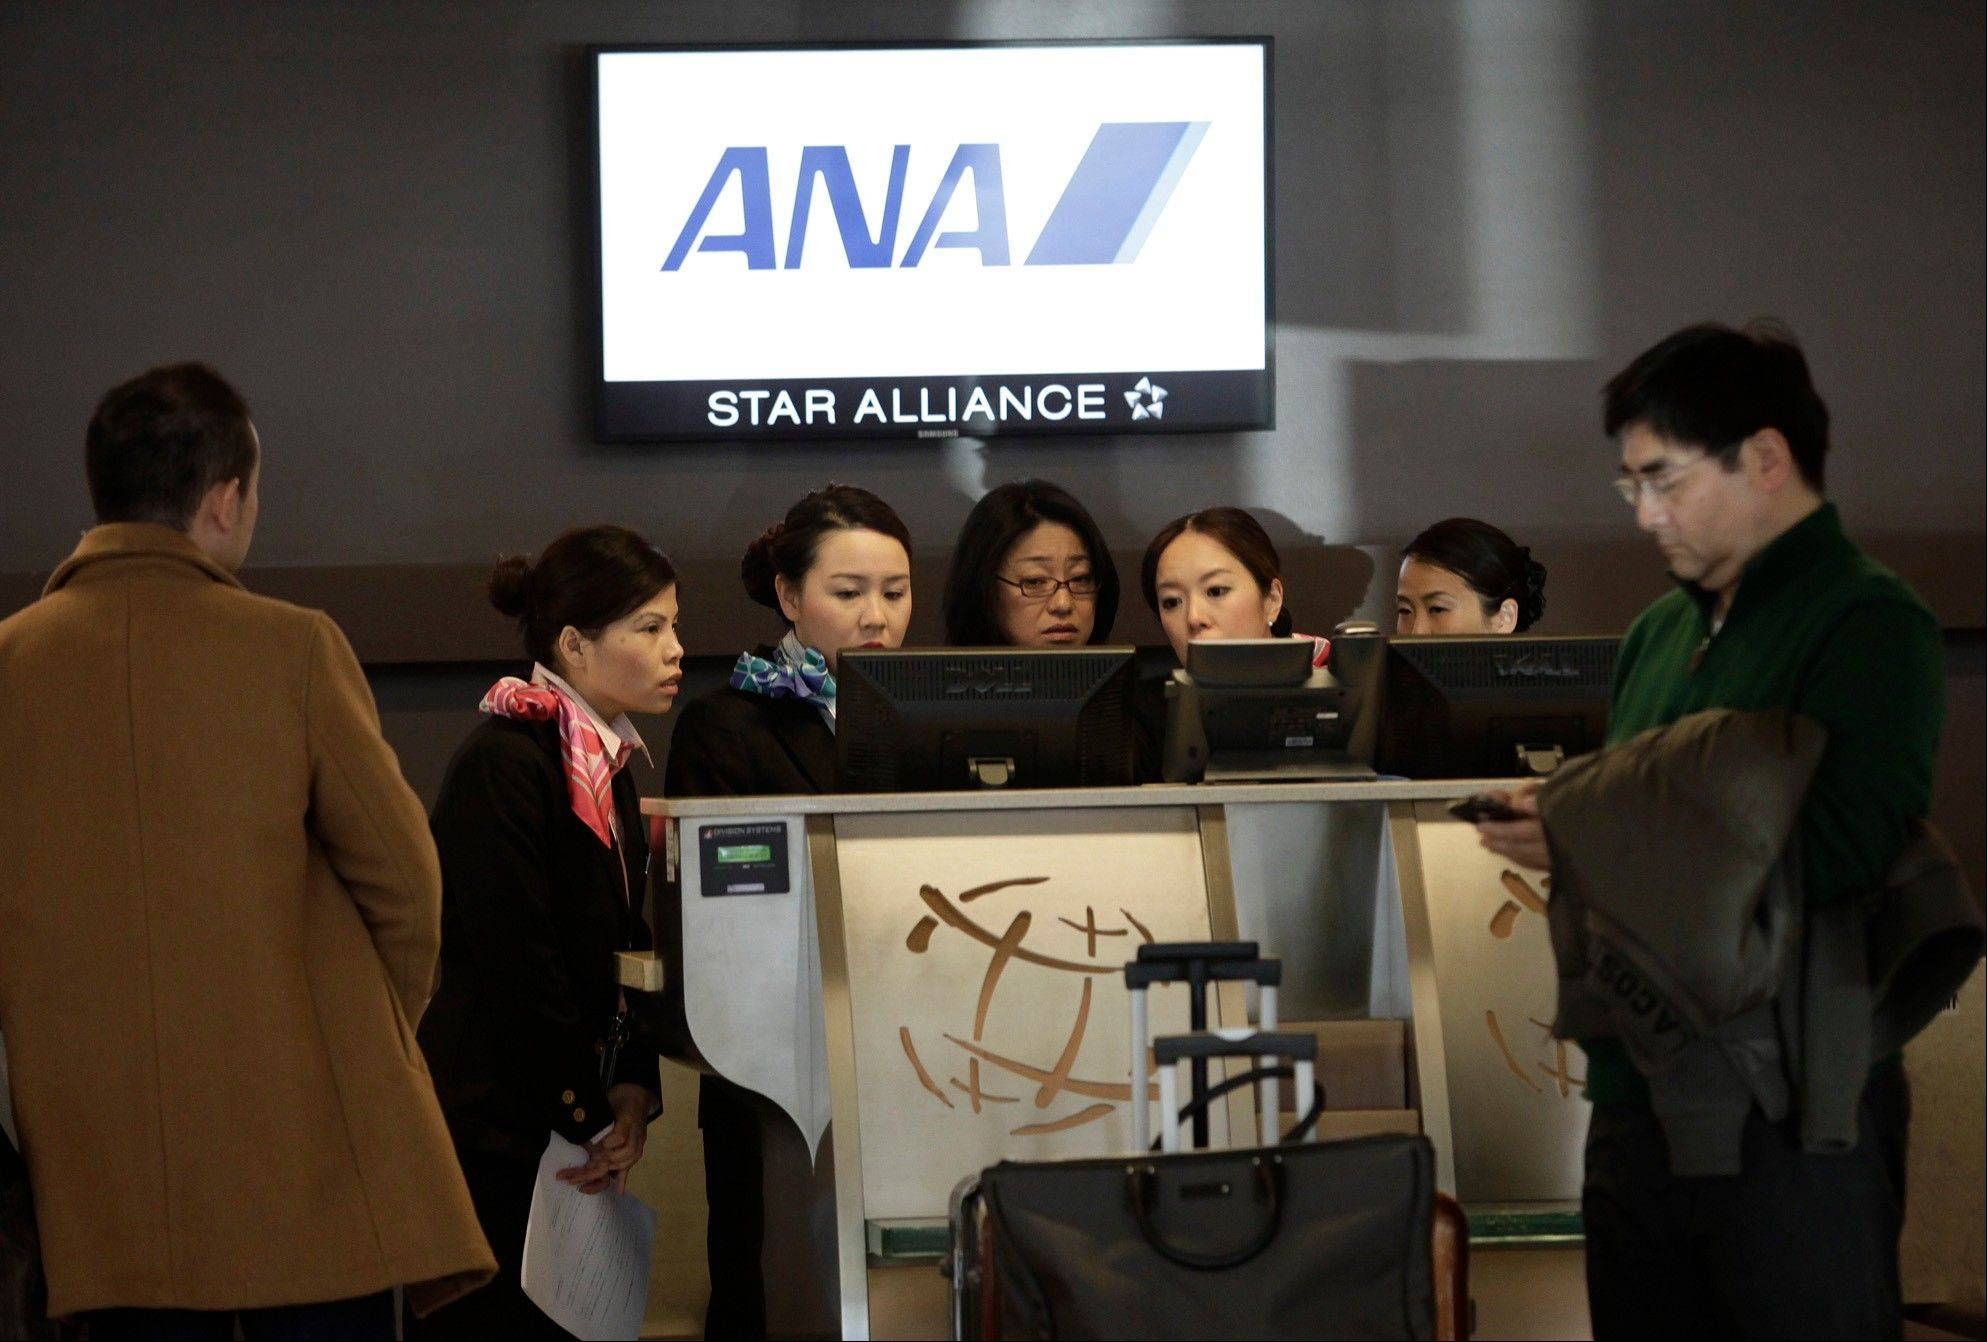 Passengers get help from the All Nippon Airways ticket counter at Mineta San Jose International Airport in San Jose, Calif. on Wednesday. ANA canceled its flight from San Jose to Tokyo Wednesday morning after authorities grounded all flights of the Boeing 787 Dreamliner.